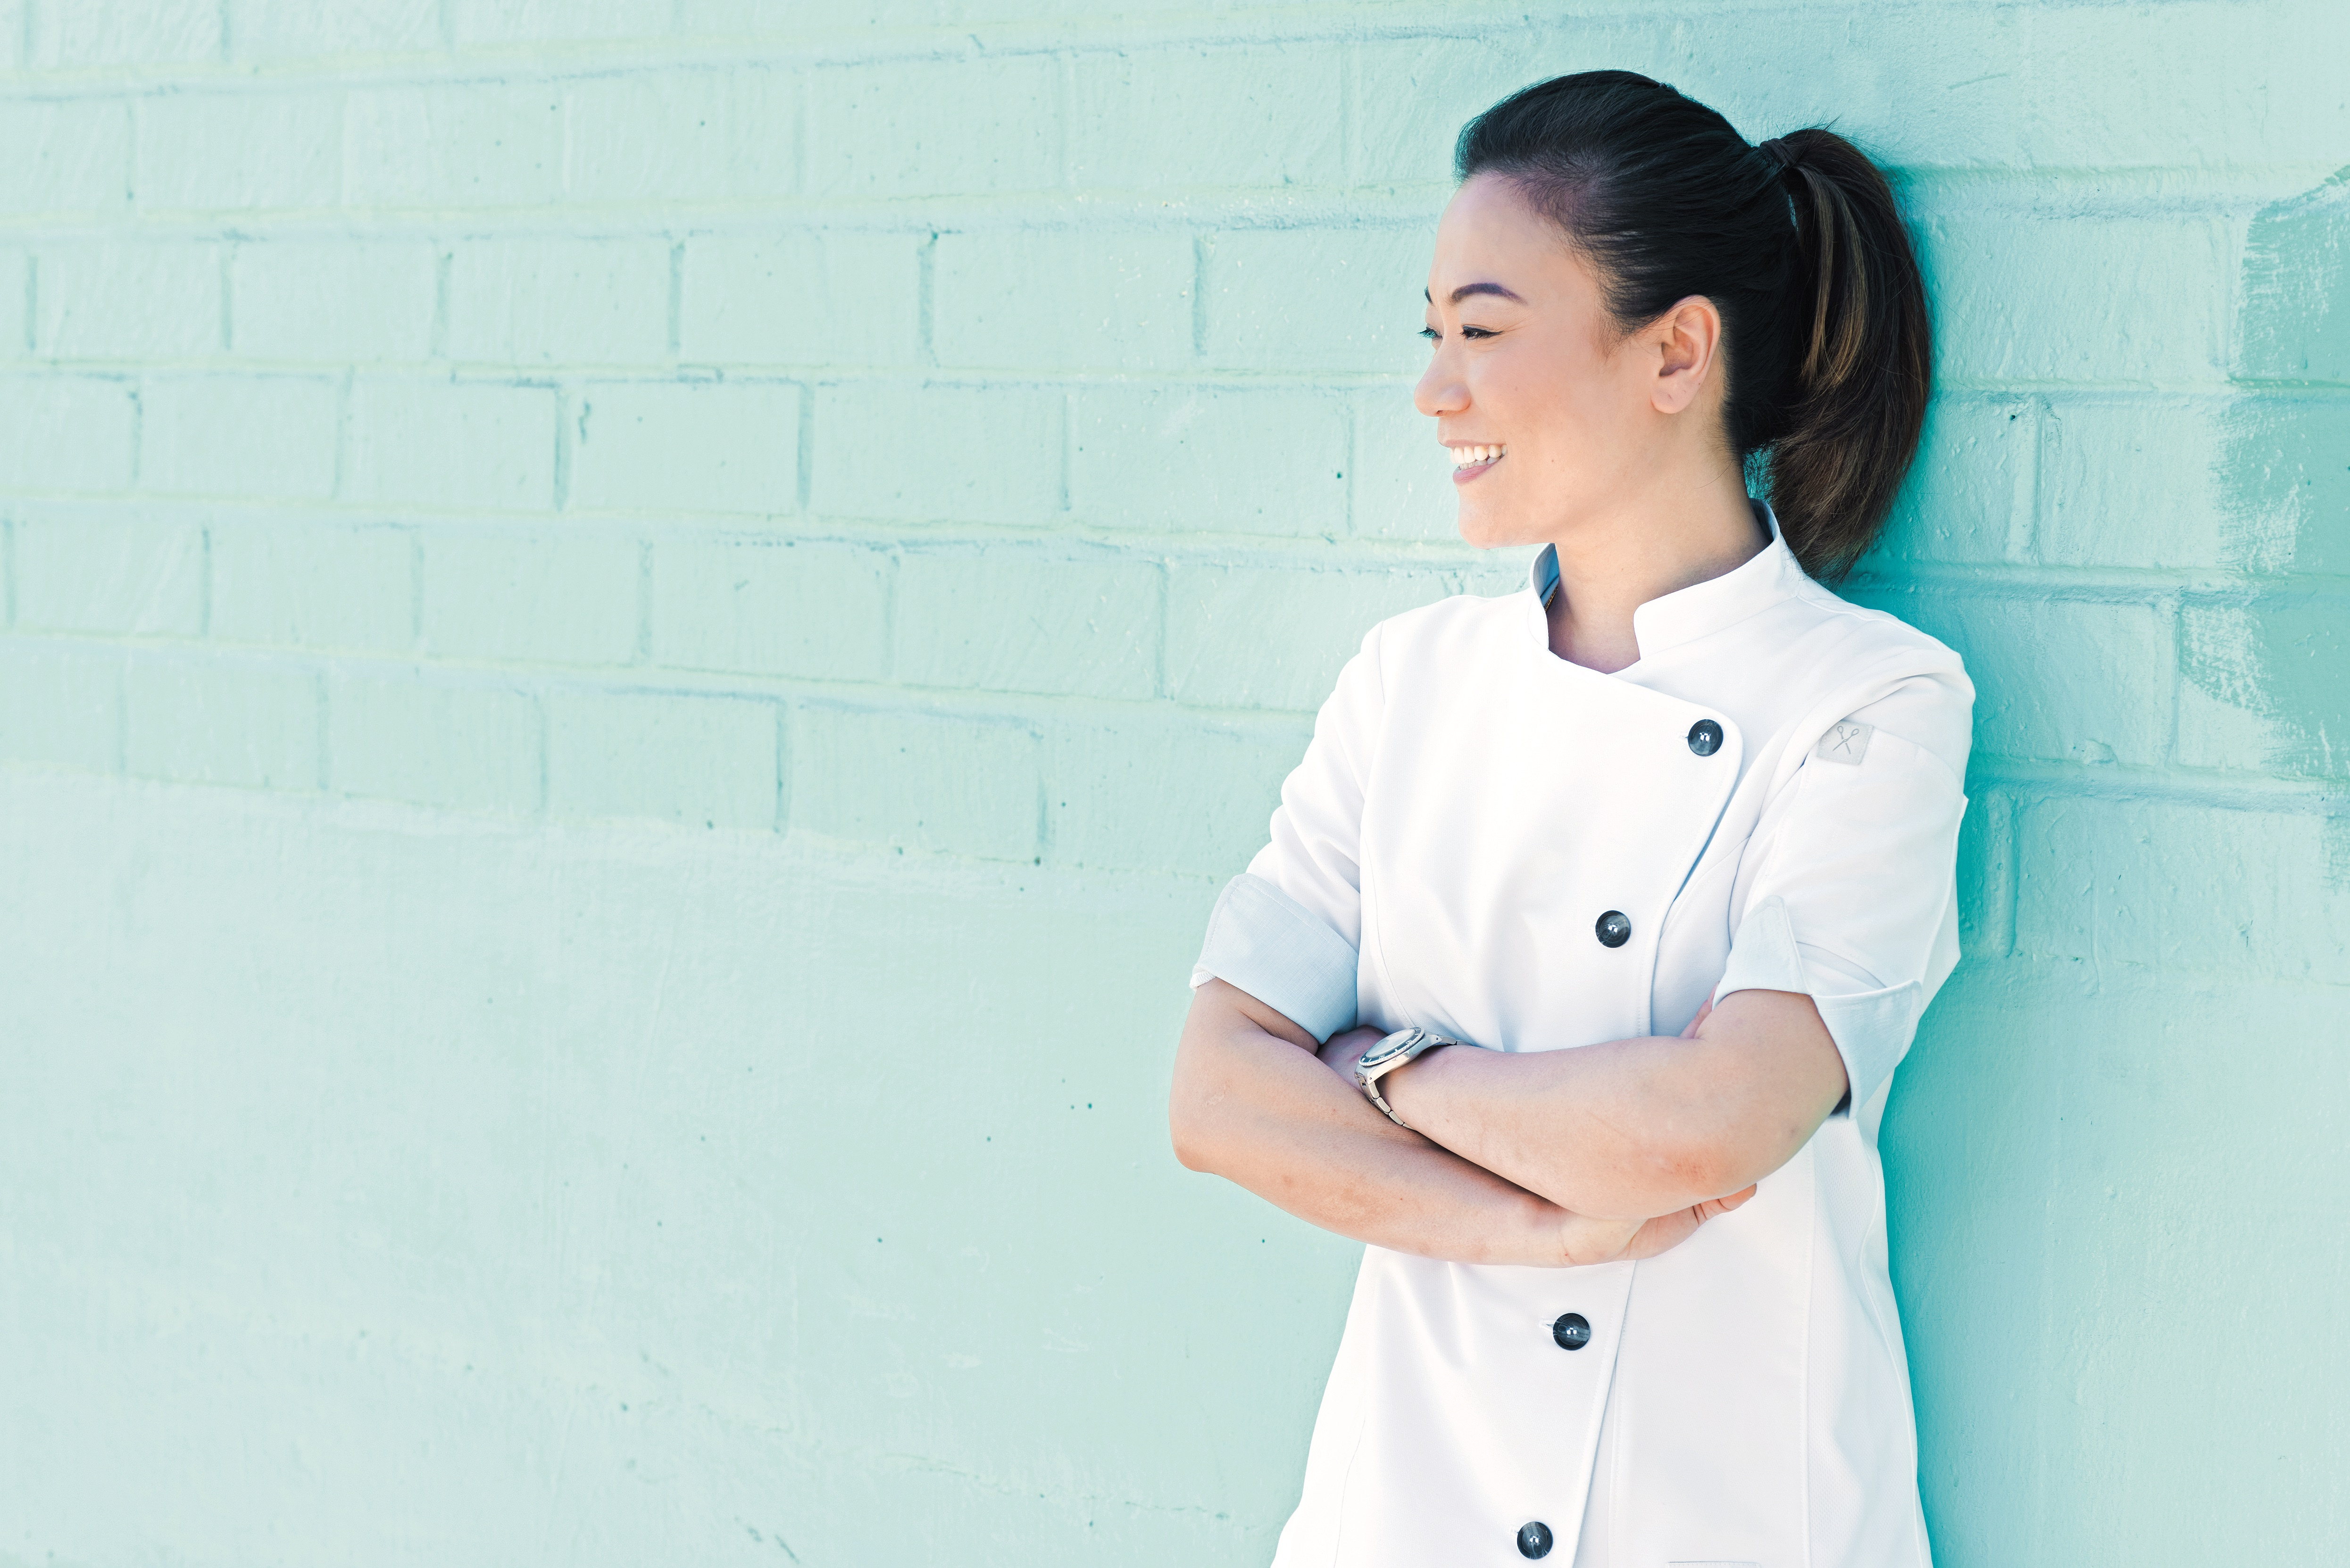 A chef in whites stands, arms crossed, next to a teal wall.